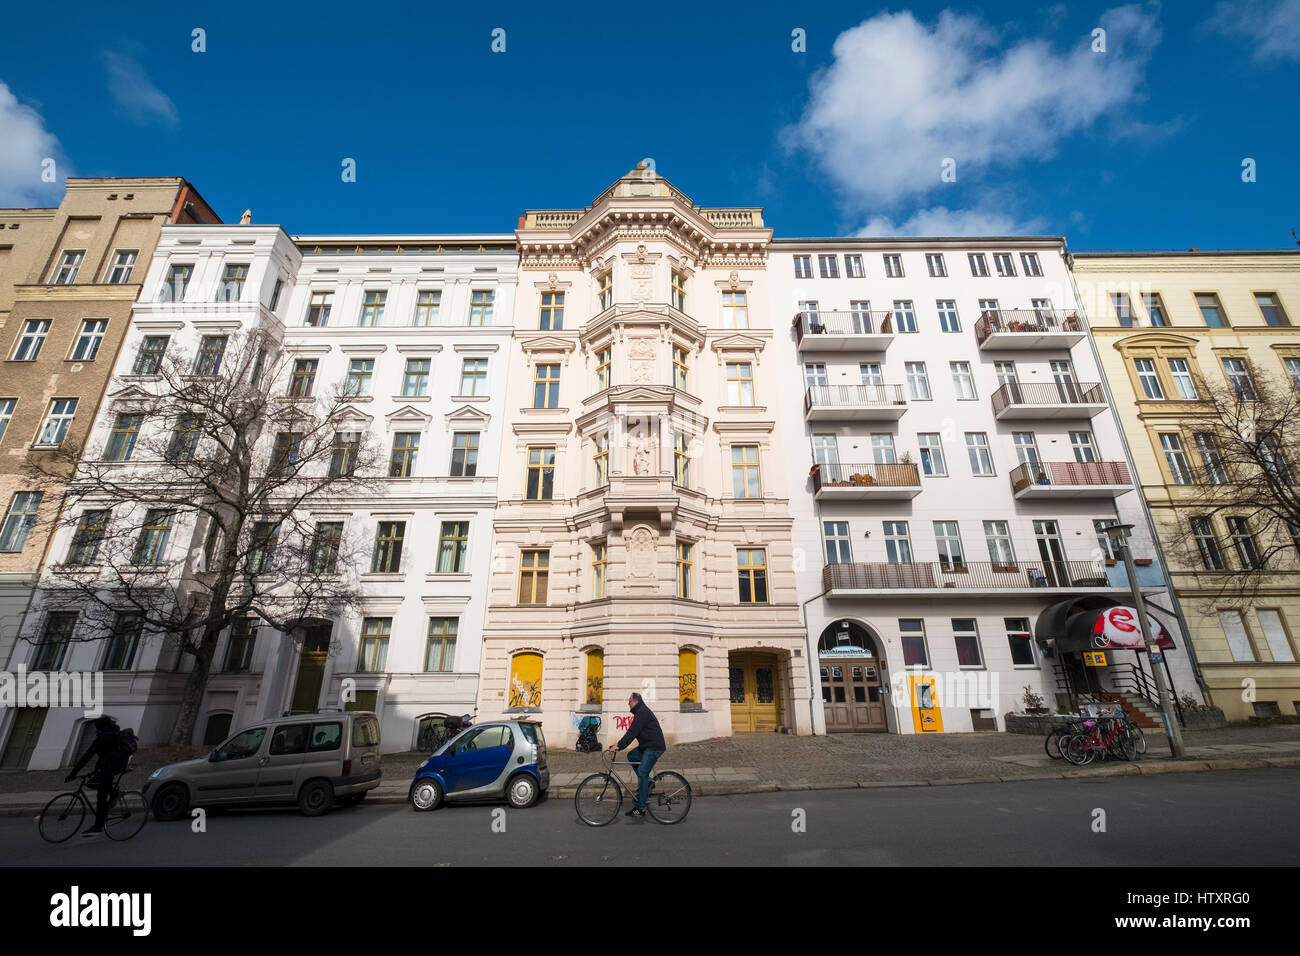 Historic renovated apartment buildings in gentrified district of  Prenzlauer Berg in Berlin, Germany - Stock Image